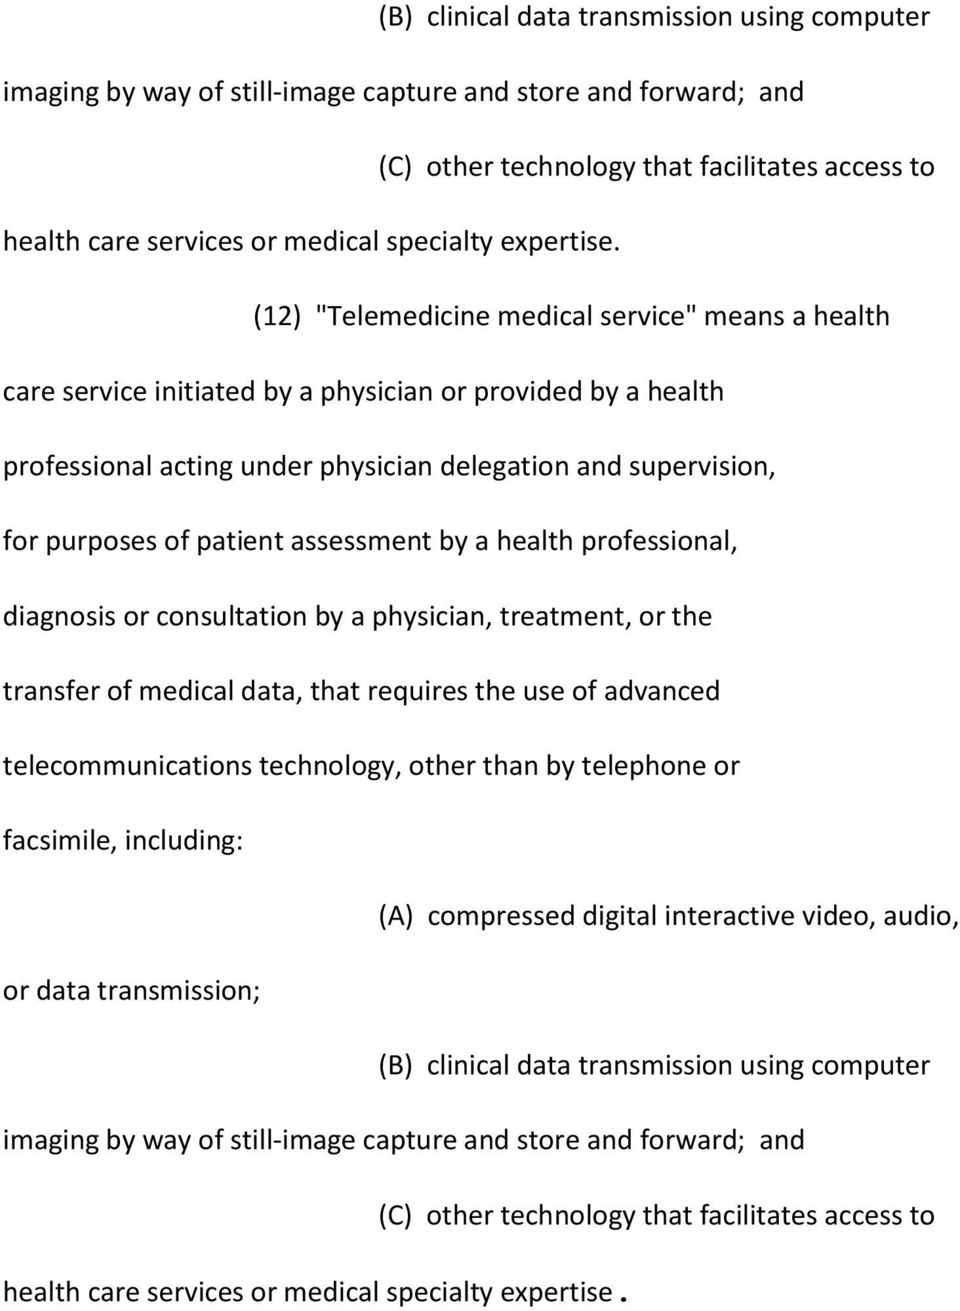 "(12) ""Telemedicine medical service"" means a health care service initiated by a physician or provided by a health professional acting under physician delegation and supervision, for purposes of"